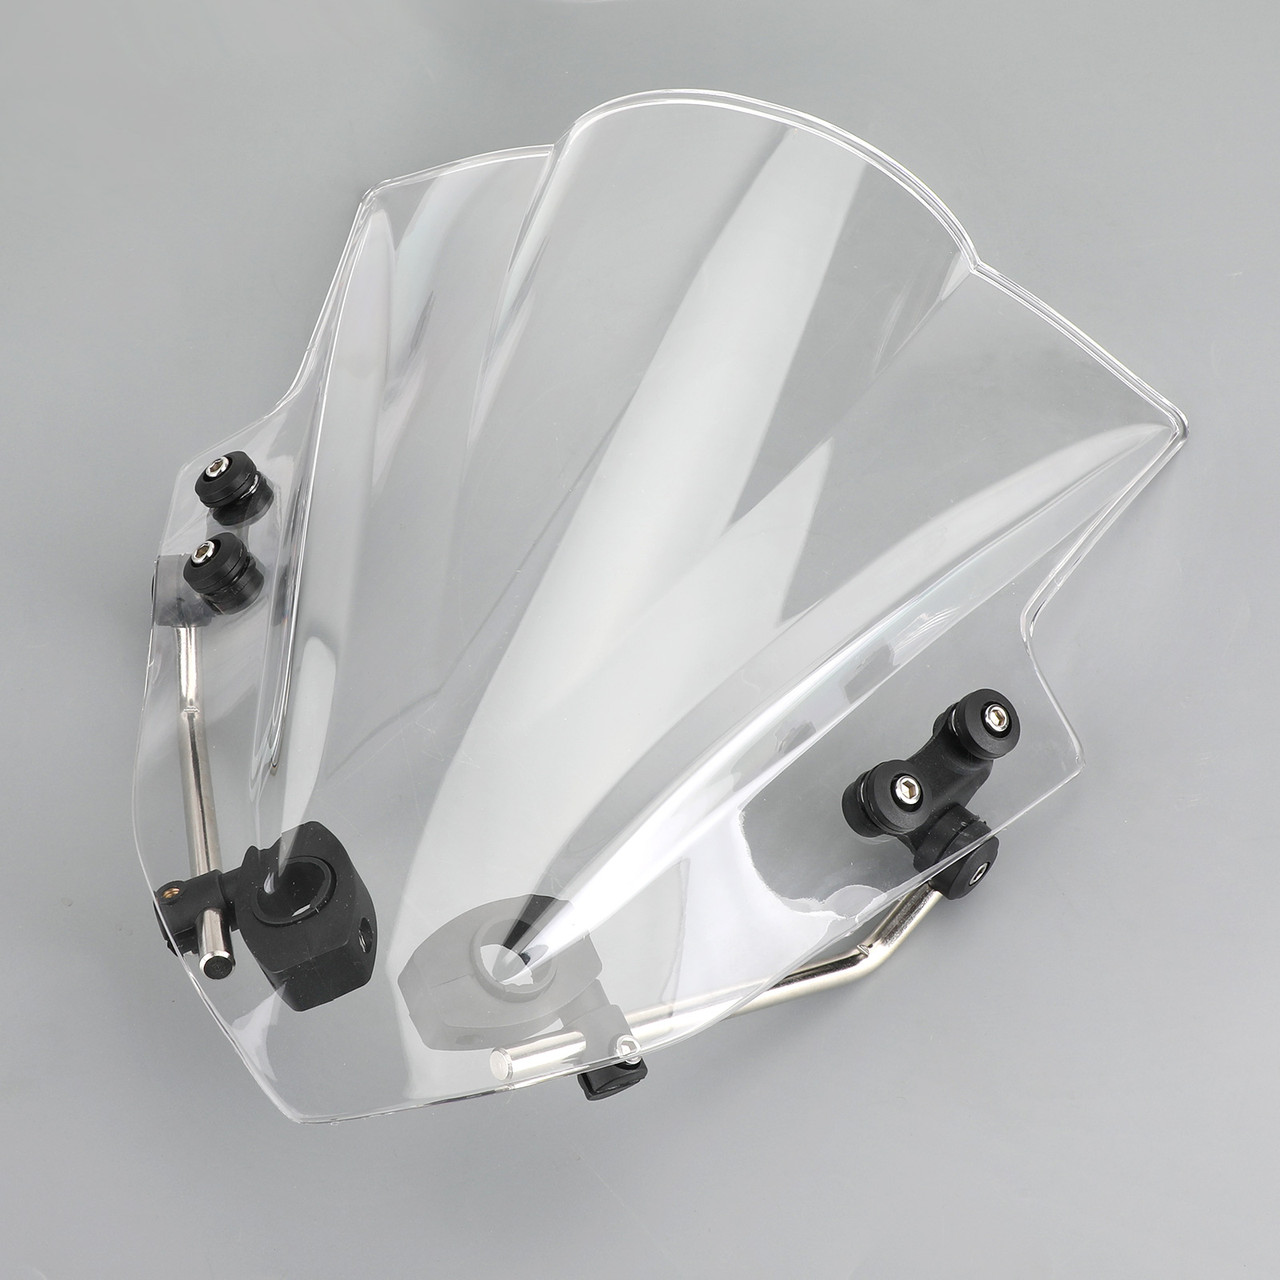 "Universal 7/8"" 22mm Handlebar ABS Plastic Motorcycle Windshield WindScreen Clear"